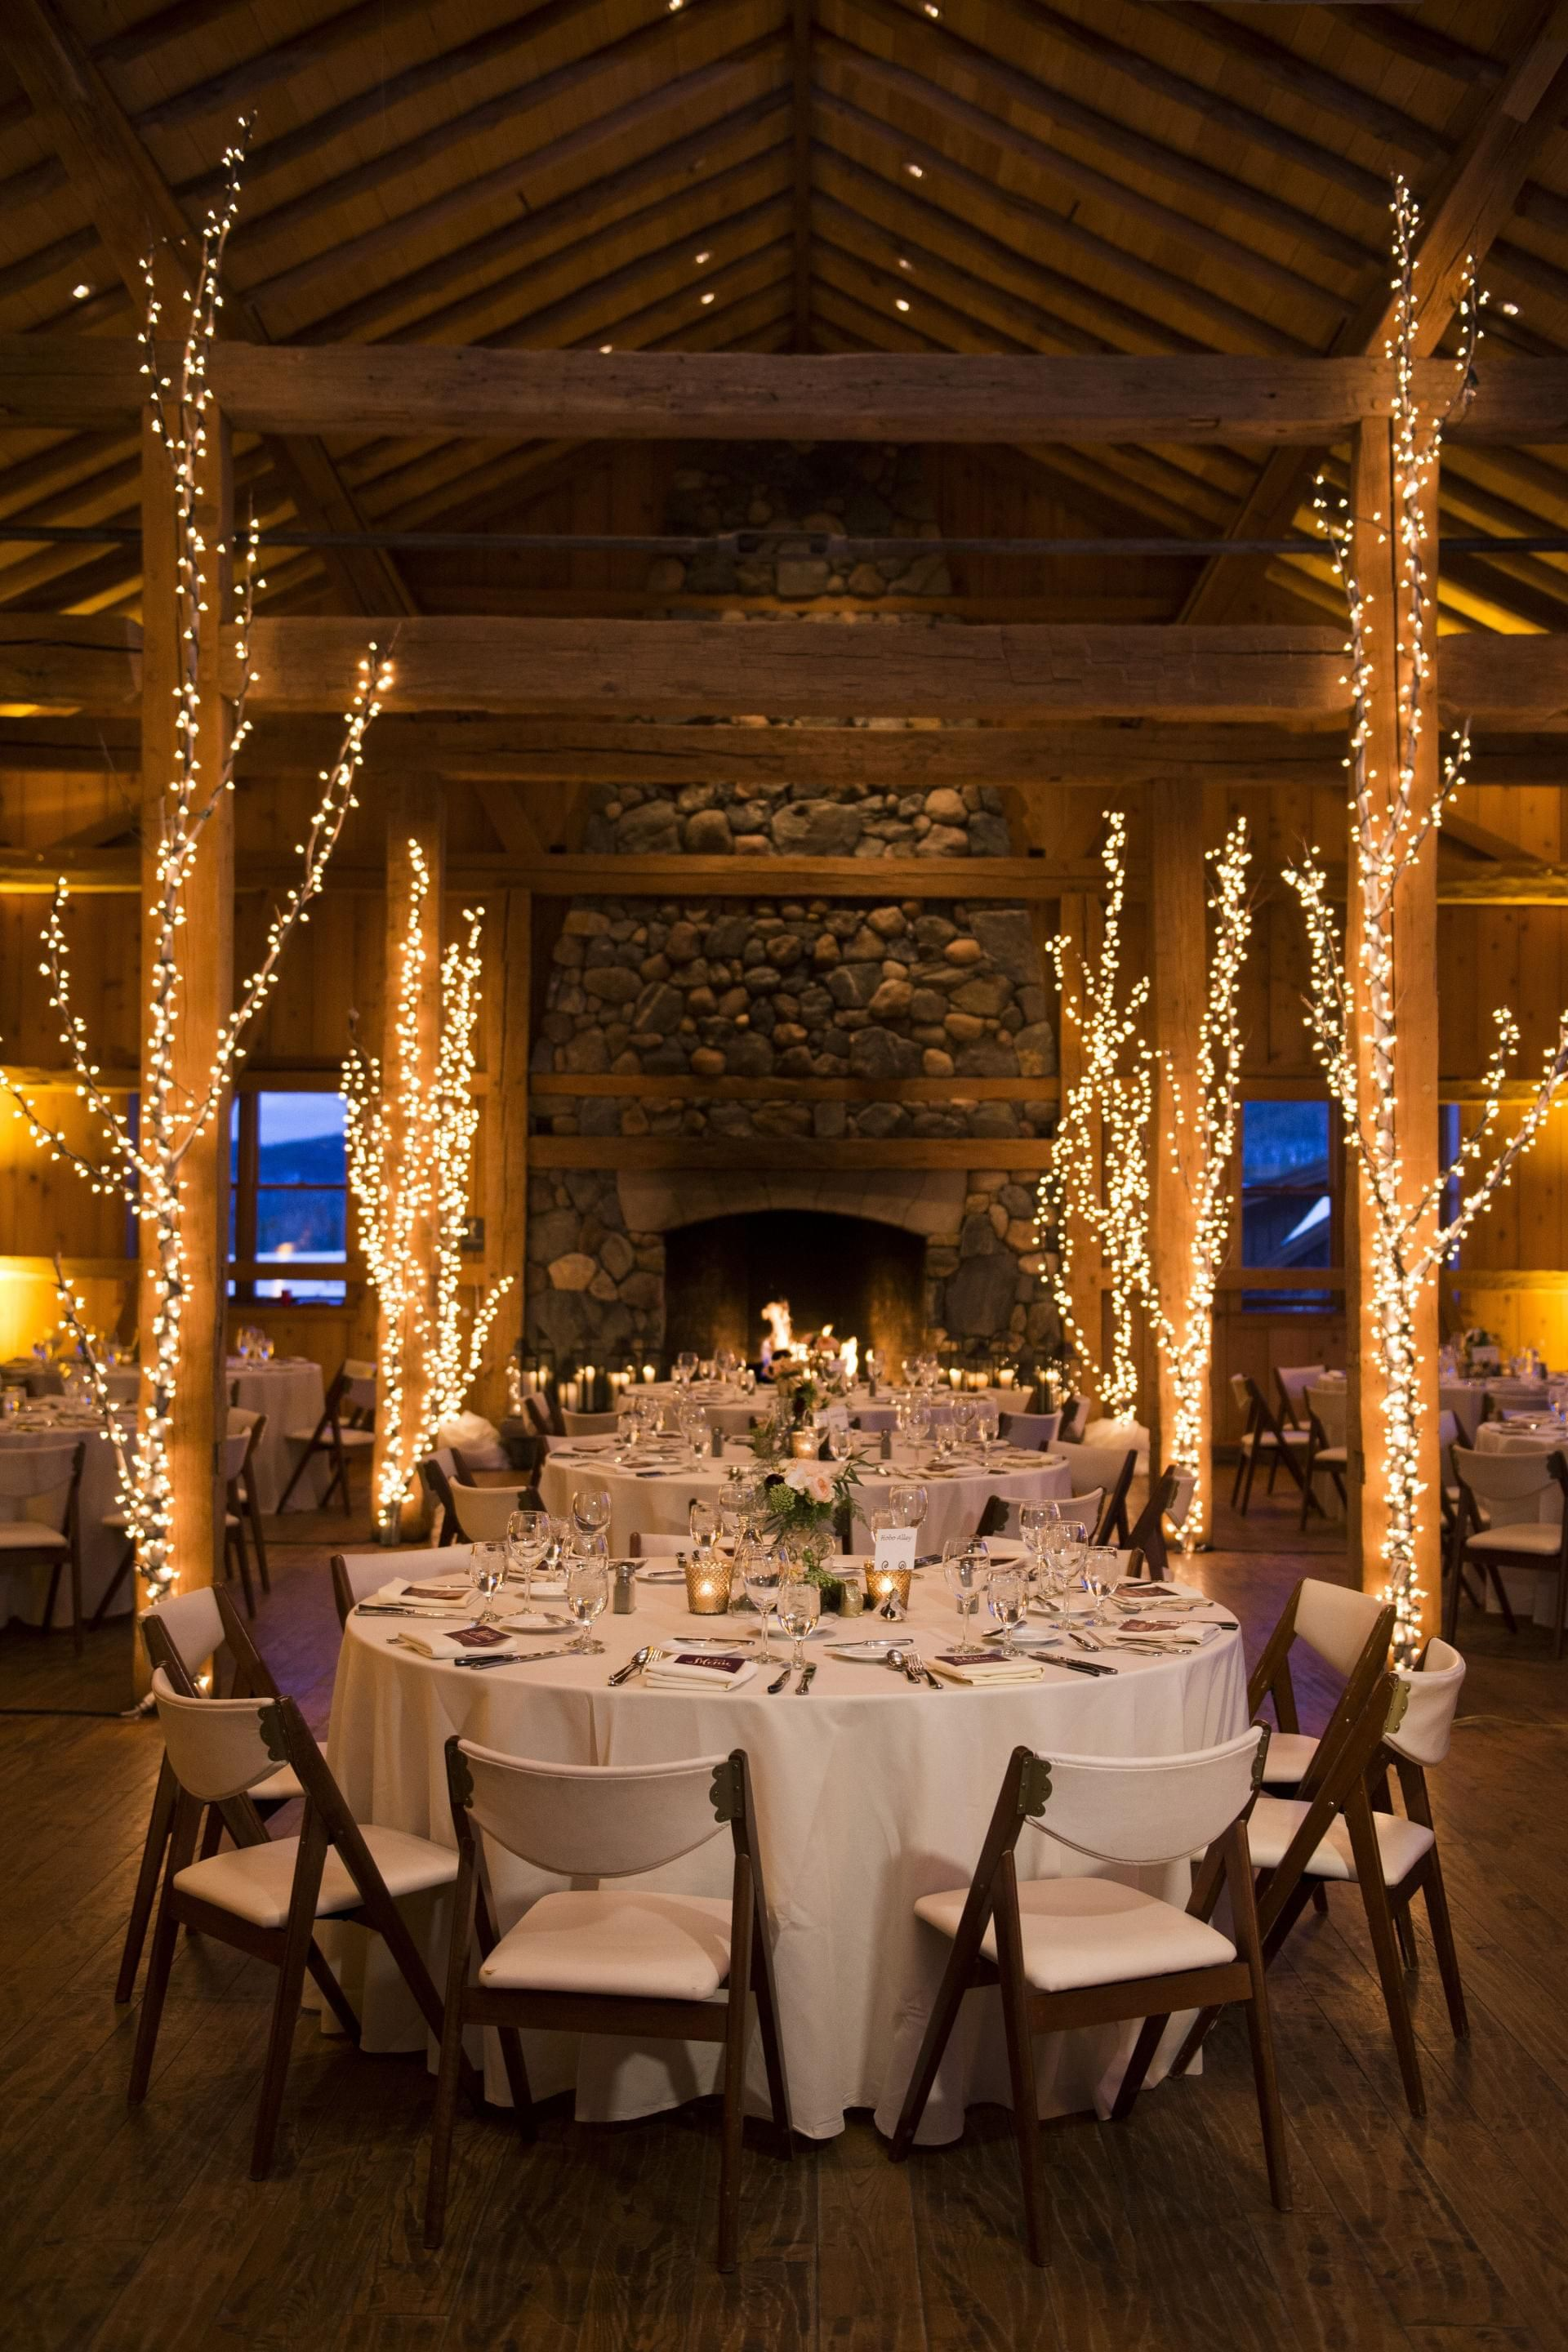 Lodge Wedding White Lights Tree Decor Rustic Elegance Indoor